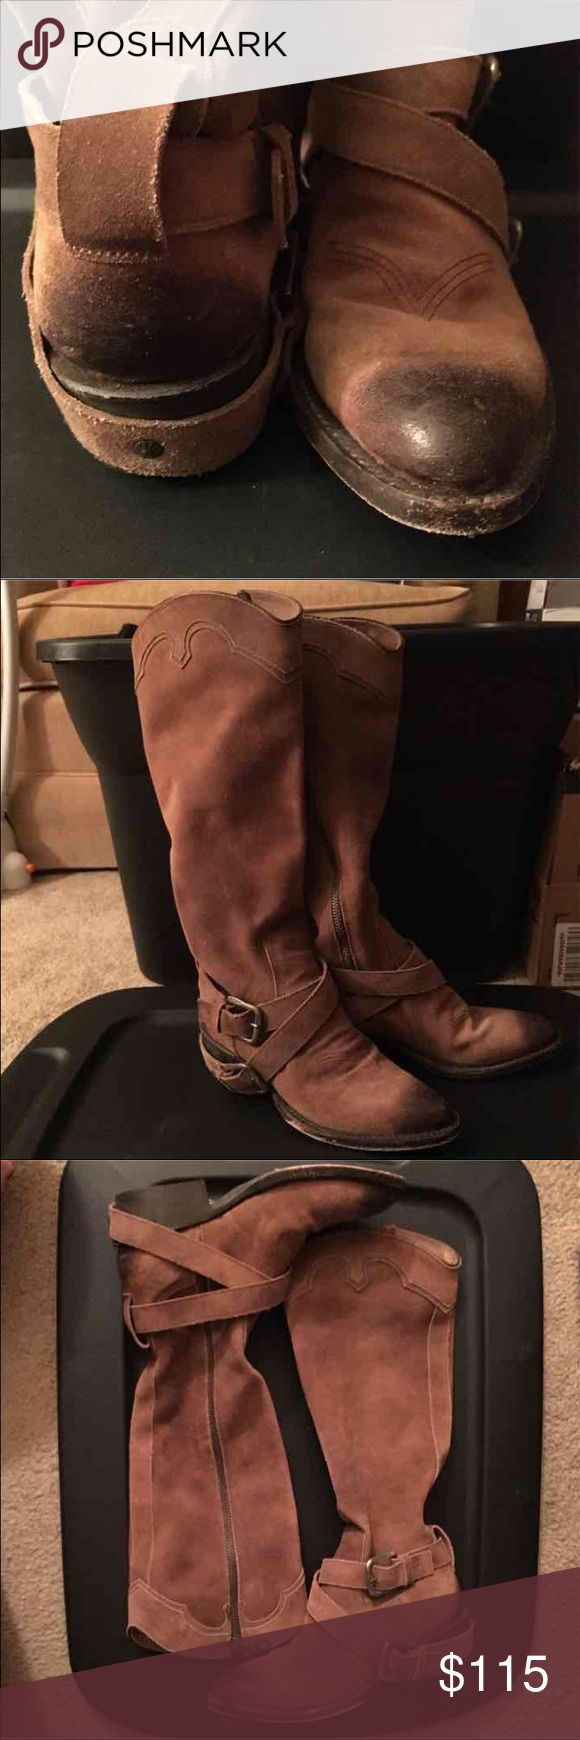 Genuine leather Matisse boots Genuine leather Matisse boots only worn twice. Note that these fit more like a 5 than a 6 and may not fit if you have wide feet or large calves. Thanks for looking! Make a reasonable offer Shoes